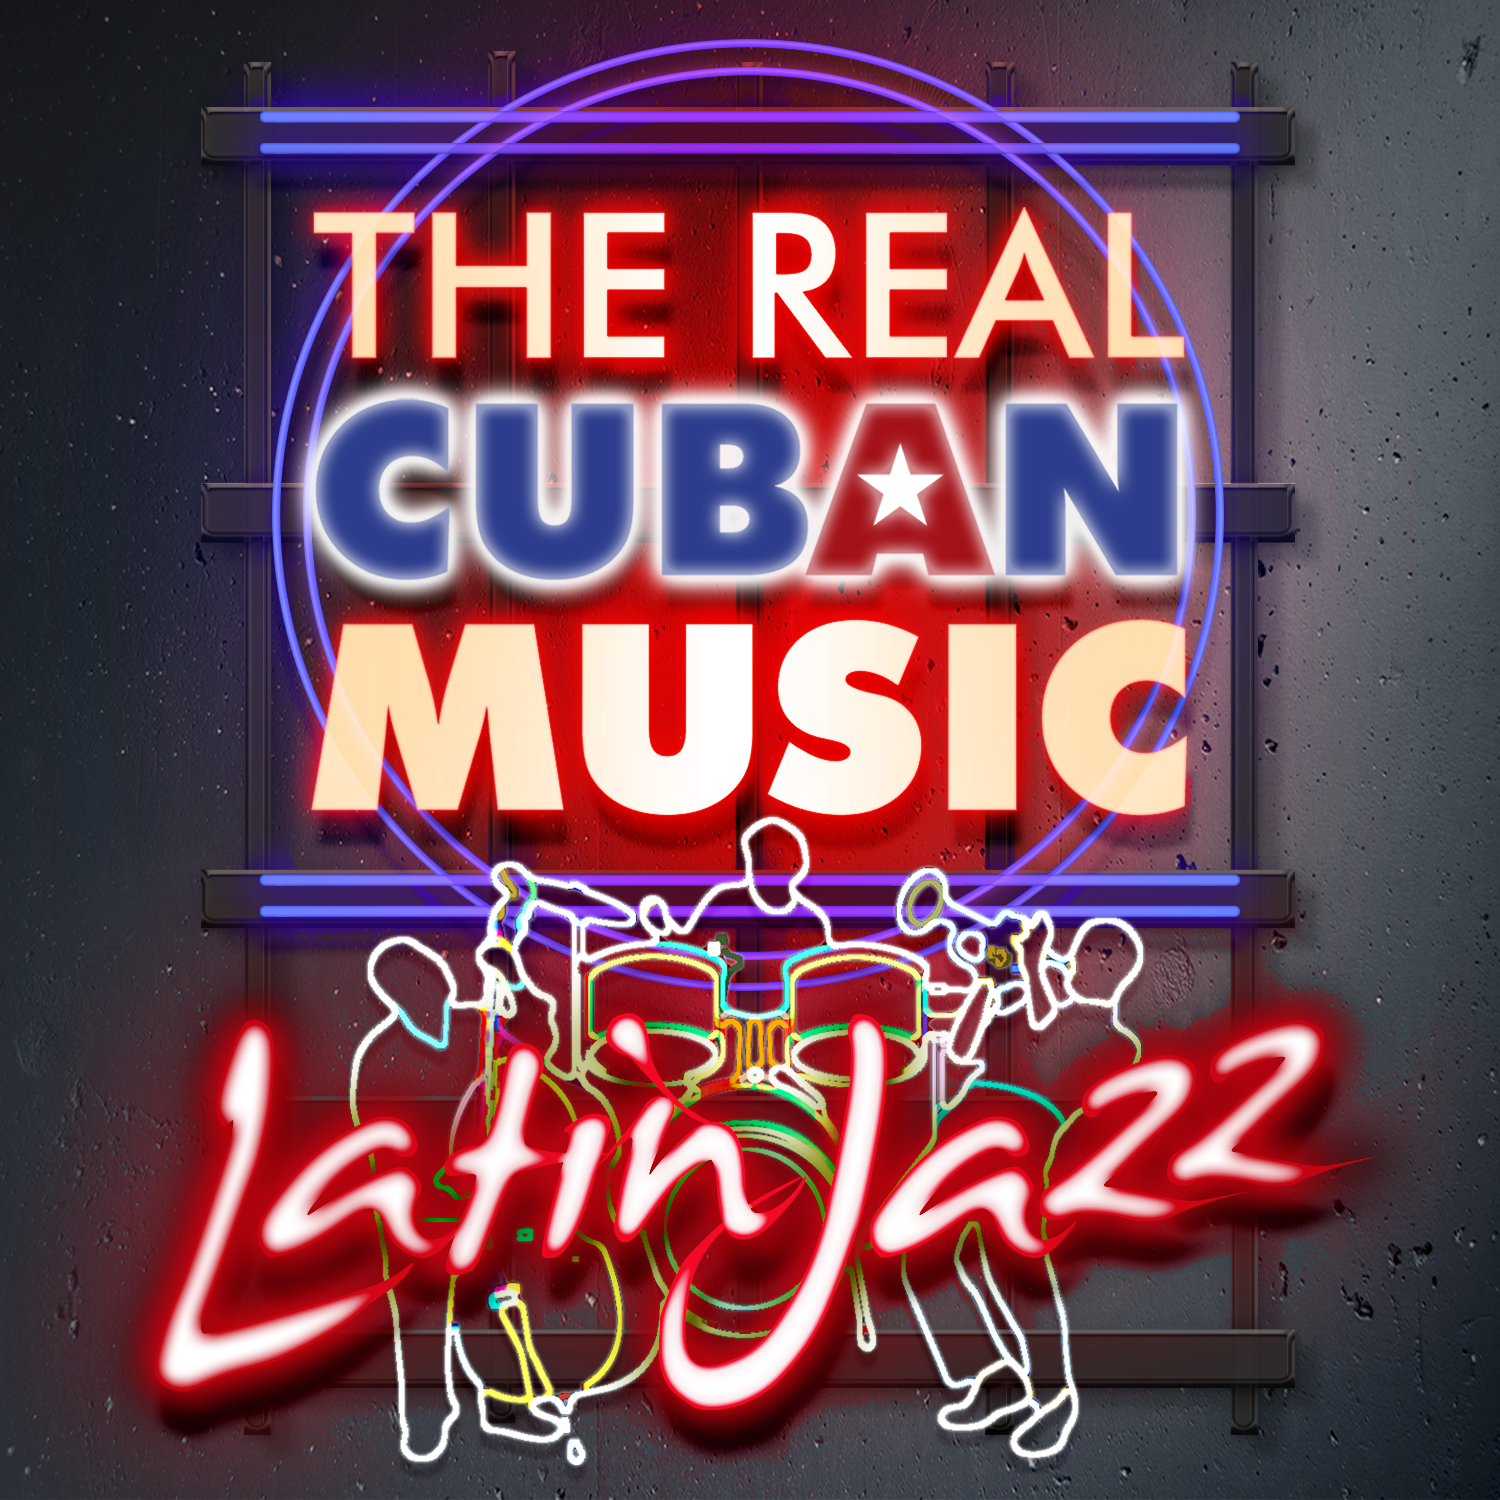 REAL CUBAN_LATIN JAZZ